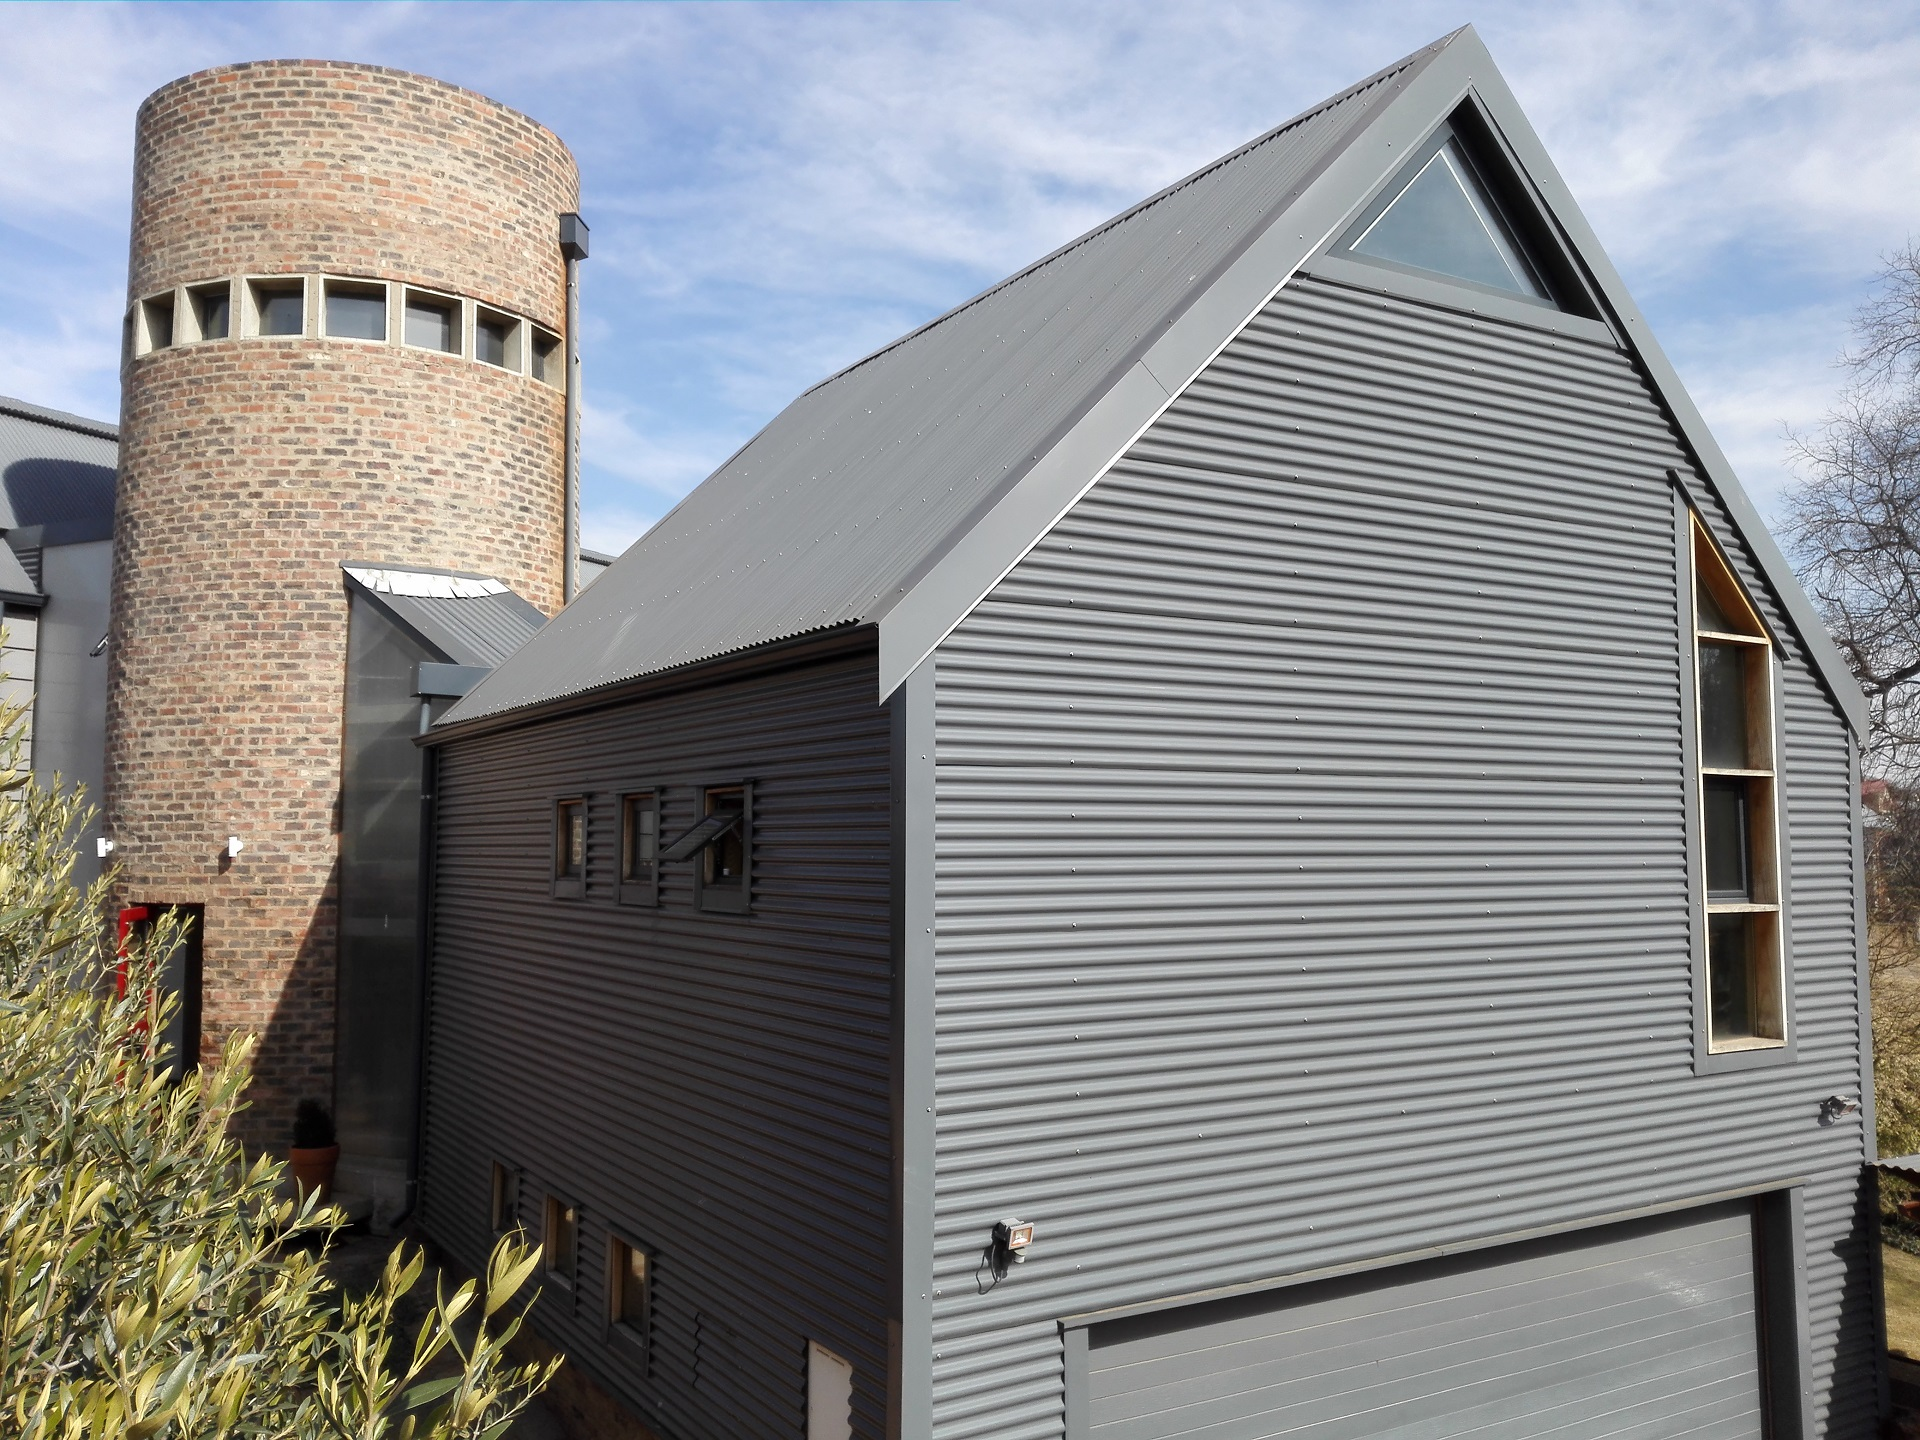 2010 - Barn House - Southdowns Estate - Corrugated - Strey Architects (5)